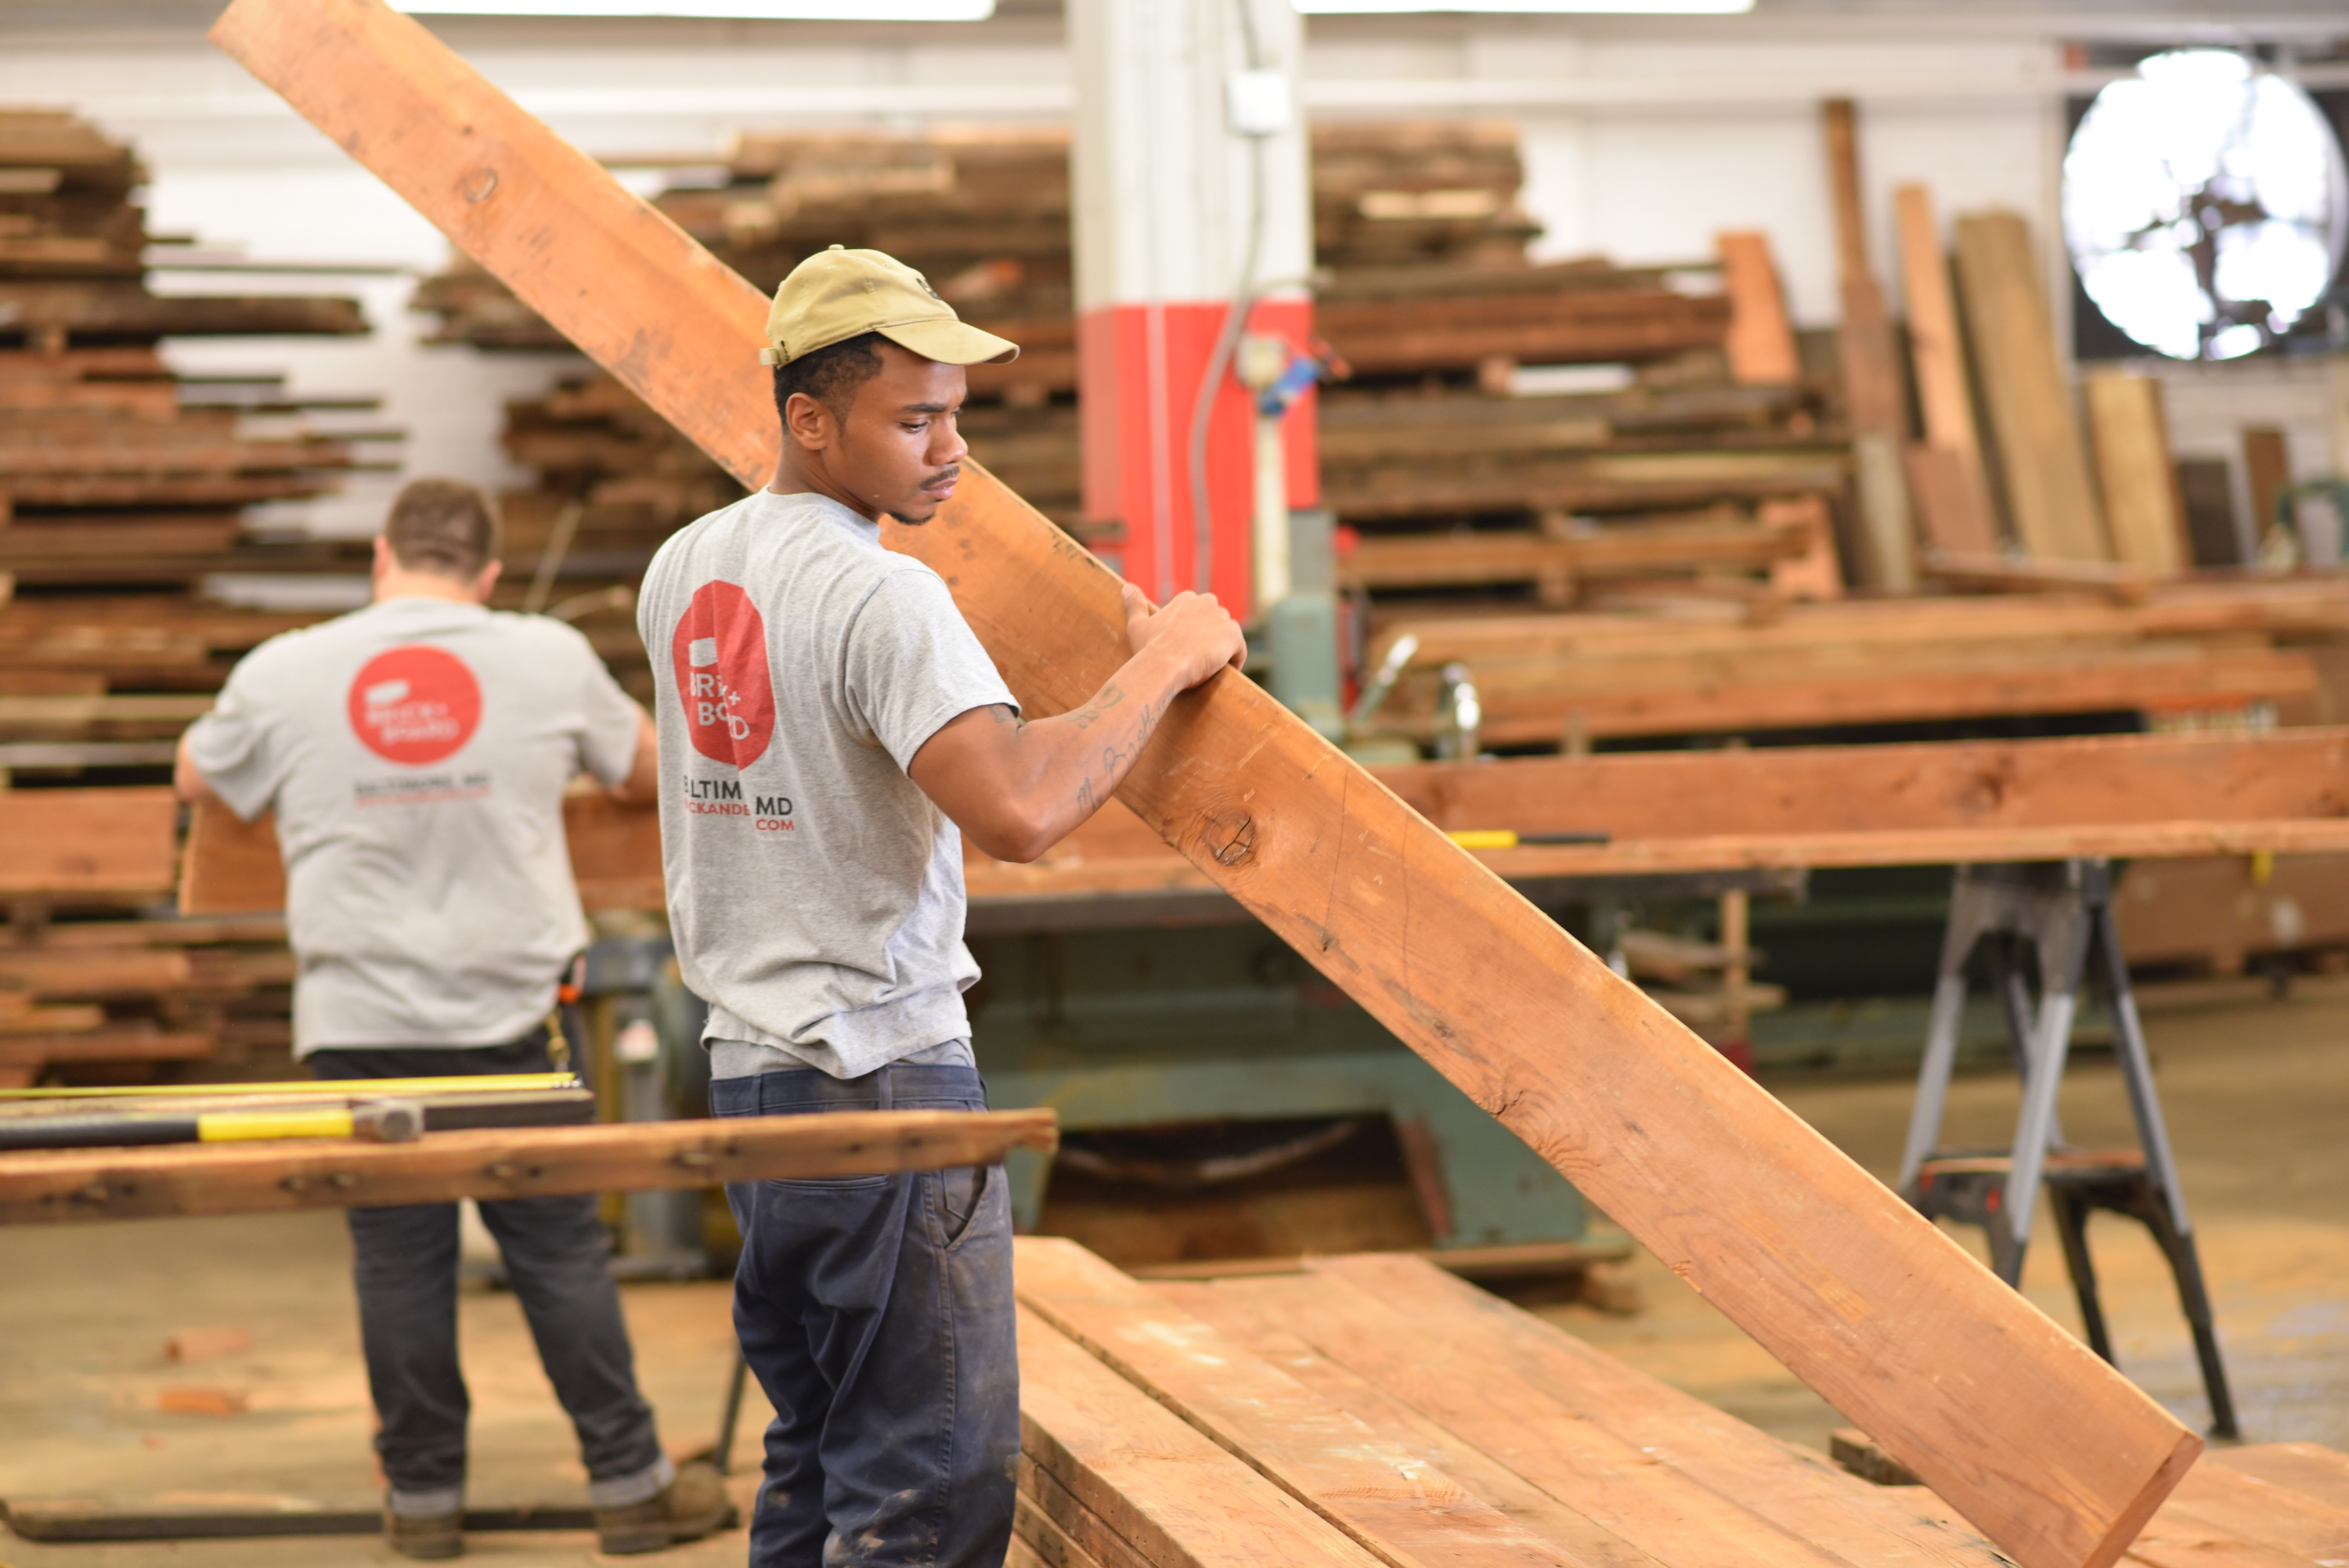 Foresters, furniture makers, city leaders create 3rd life for Baltimore's urban wood